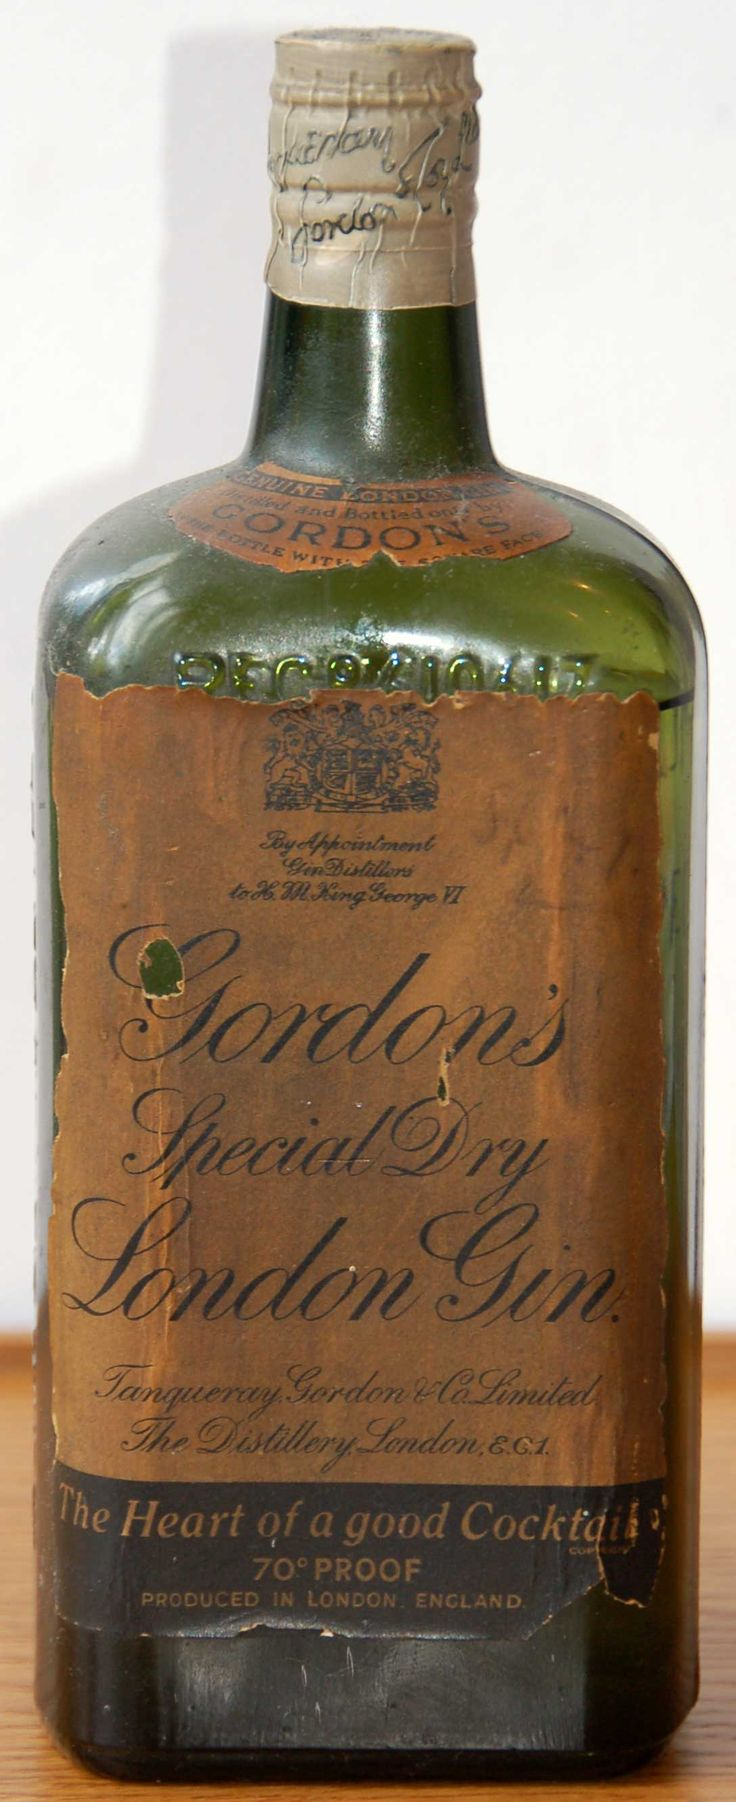 Gordon's Special Dry London Gin 1930's